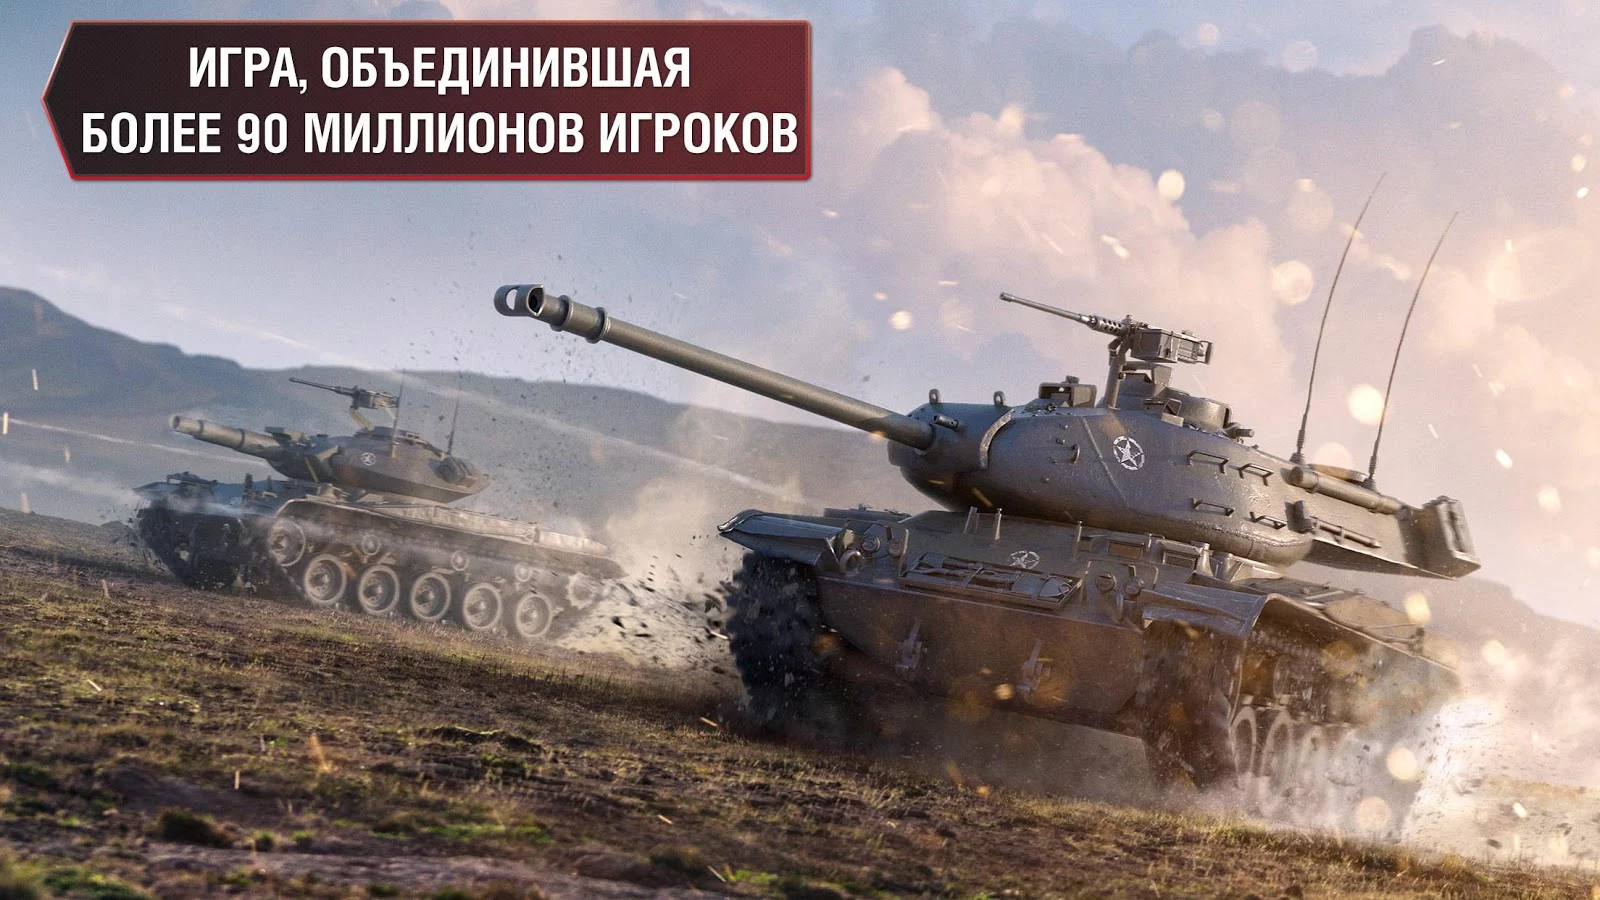 <b>World</b> <b>of</b> <b>Tanks</b> <b>Blitz</b> - 4PDA | Форум